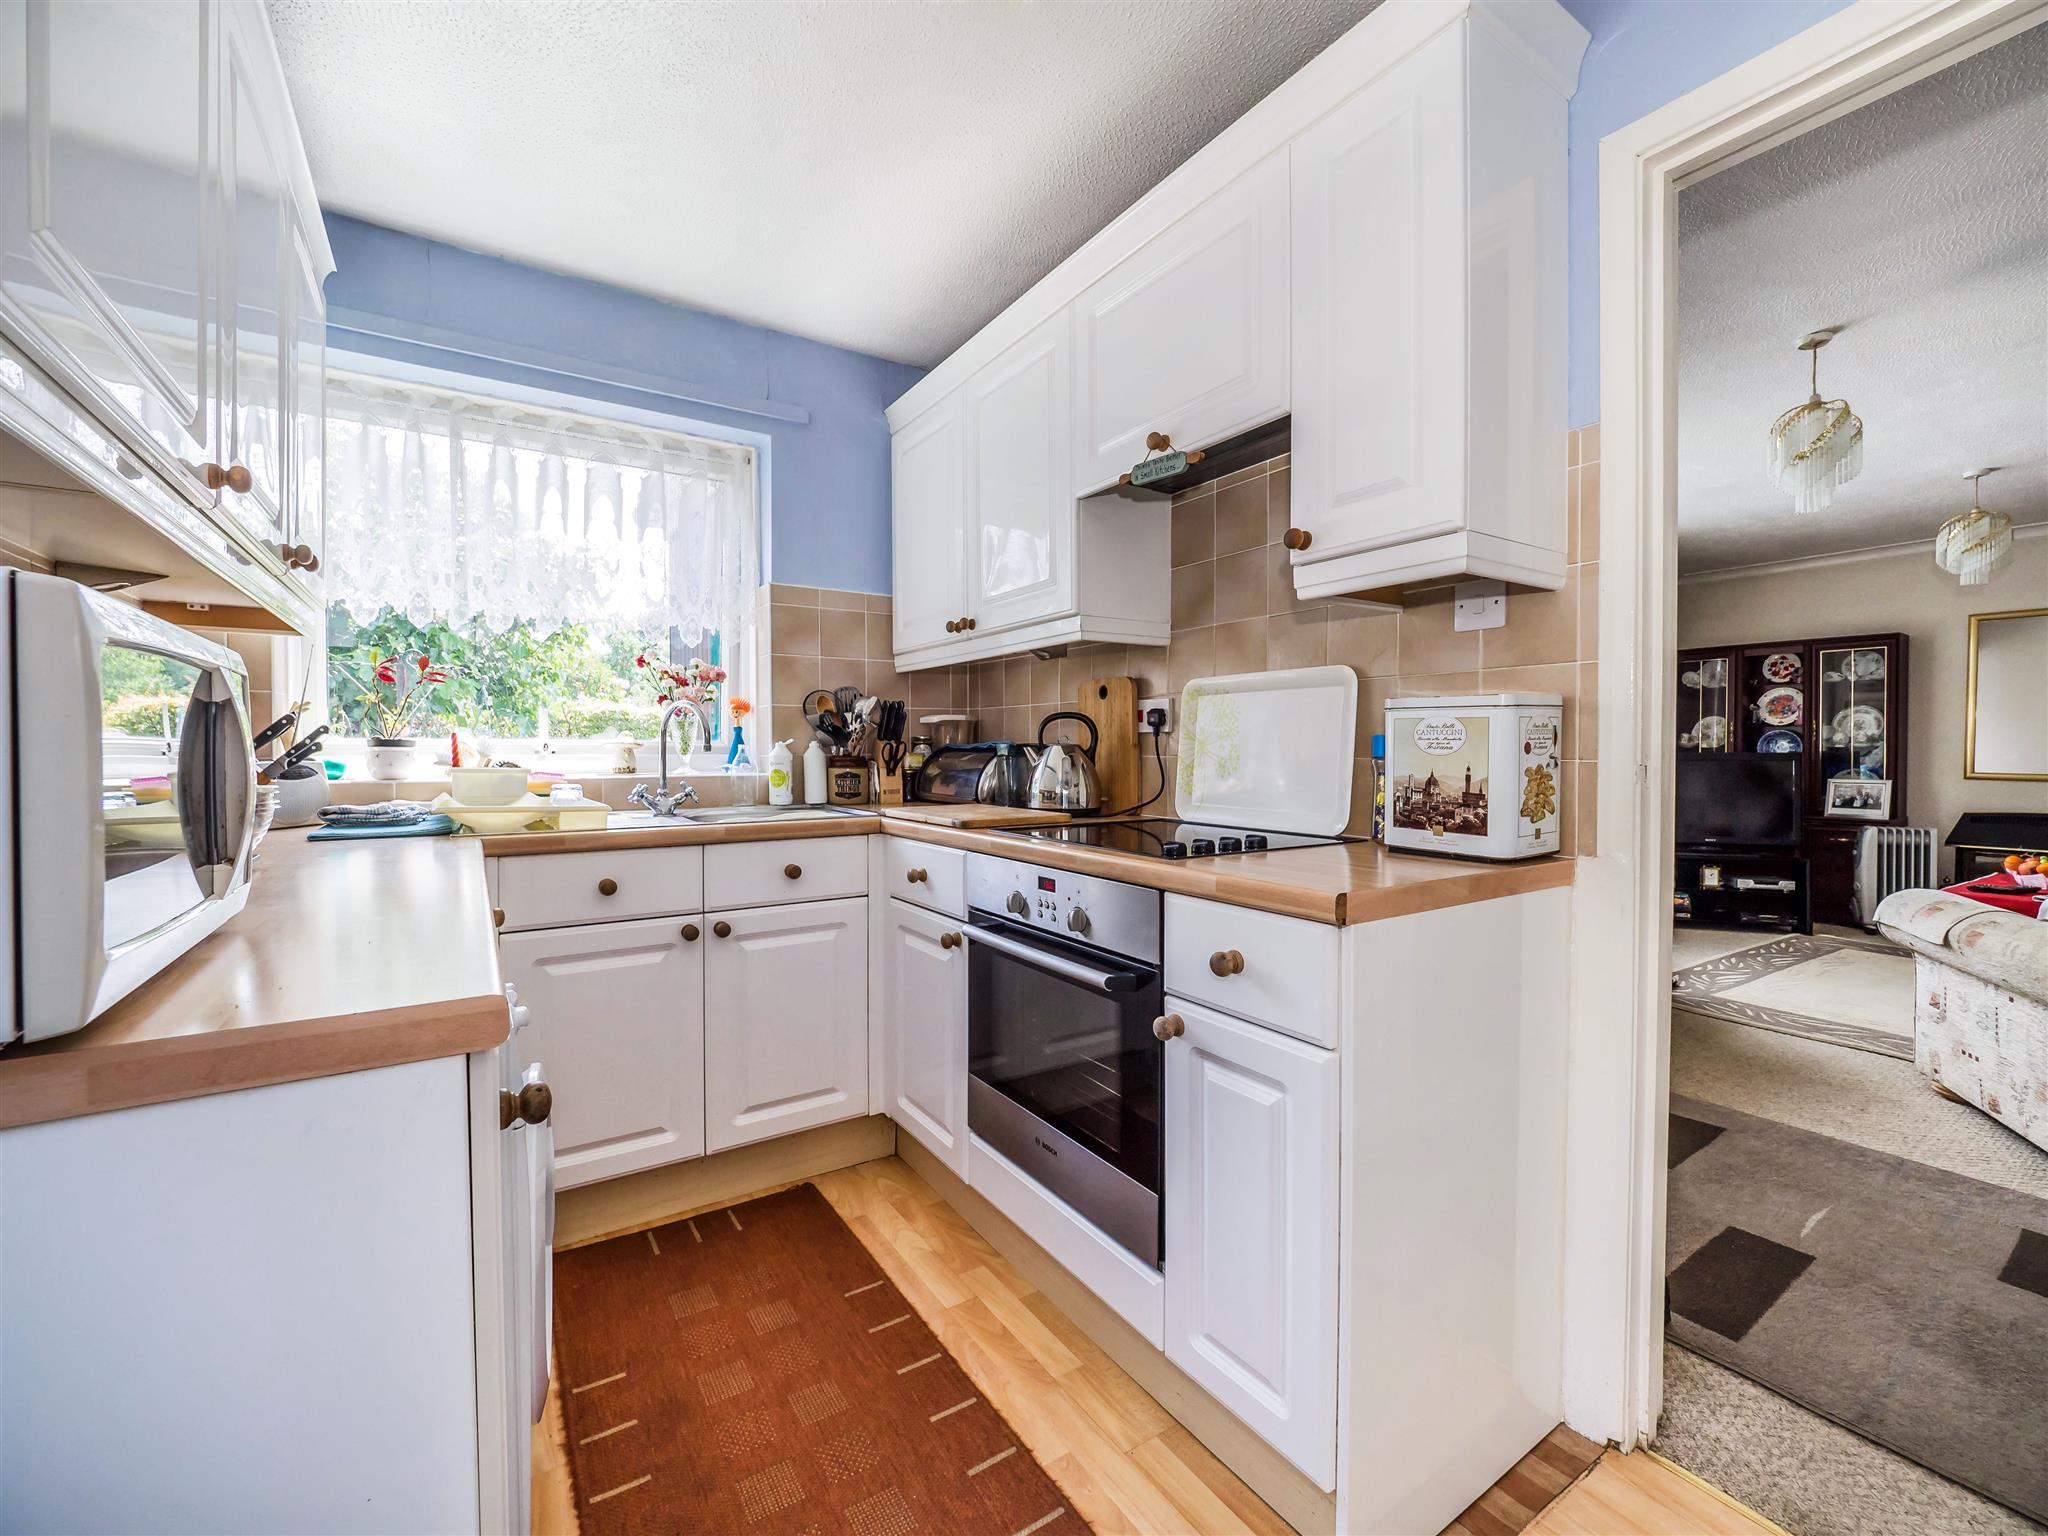 Bed Property To Rent In Martham